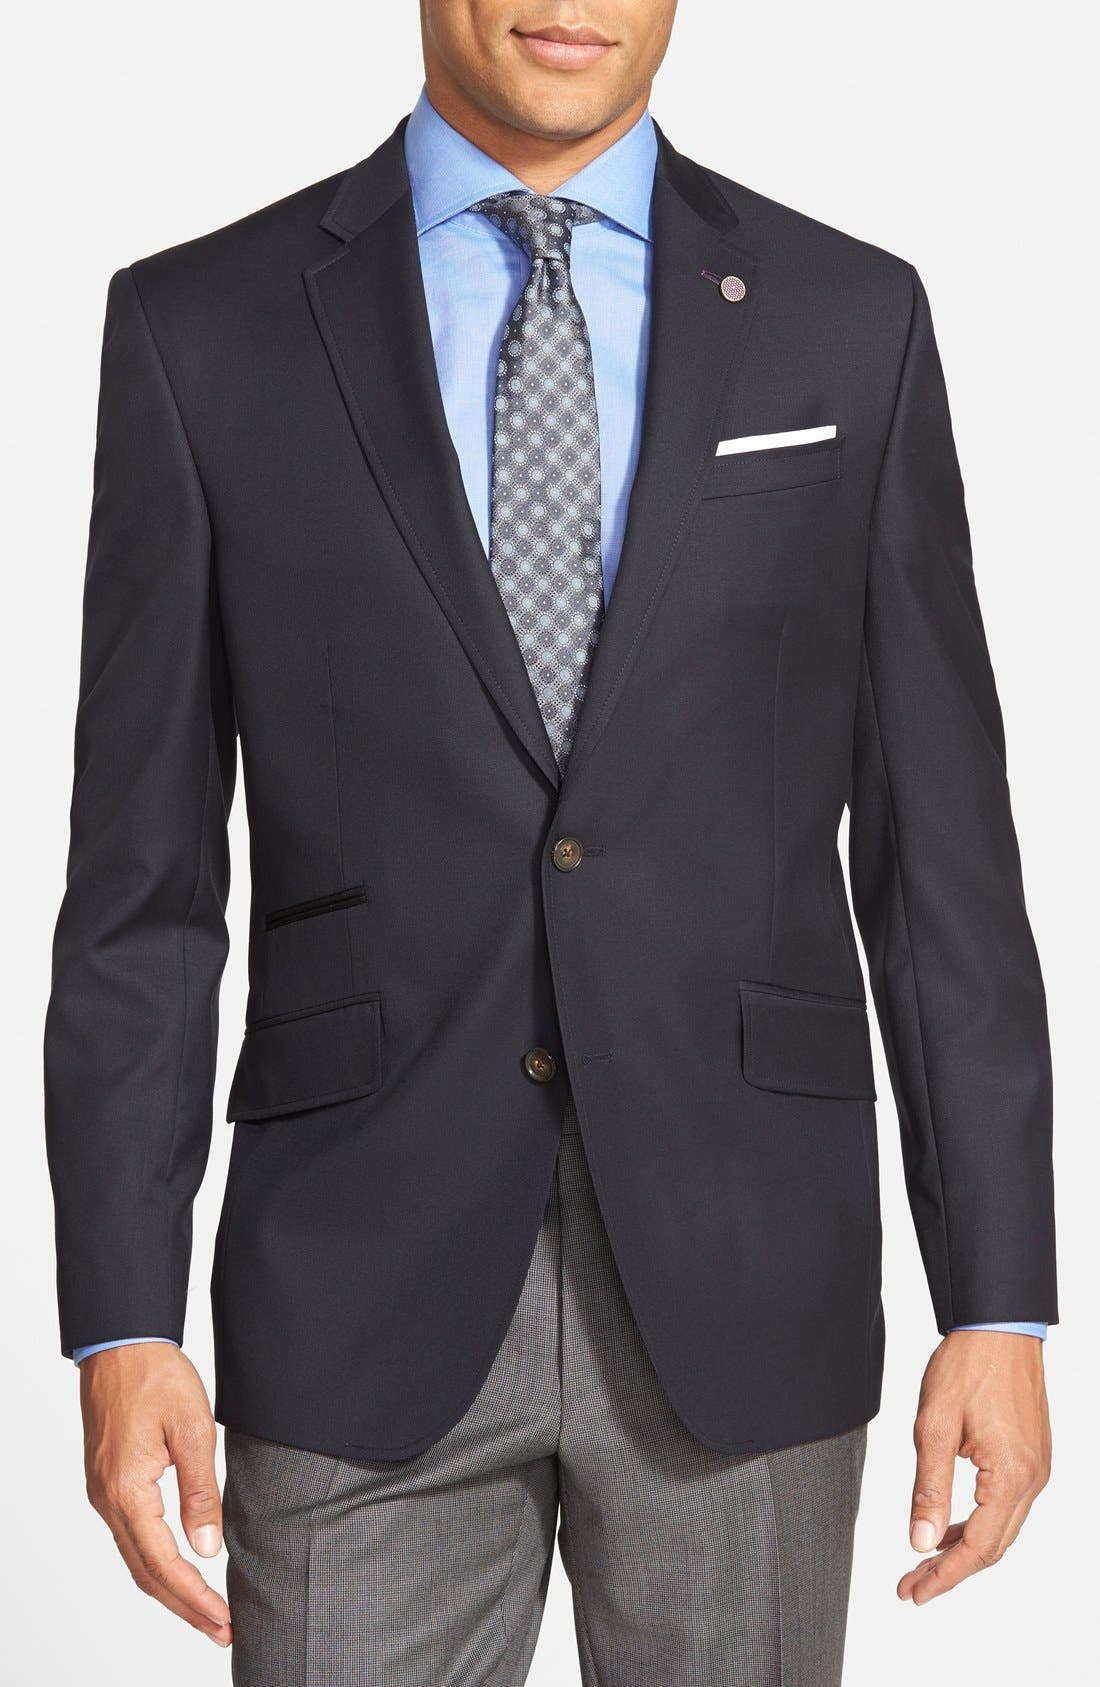 Alternate Image 1 Selected - Ted Baker London 'Judd' Trim Fit Navy Wool Blazer